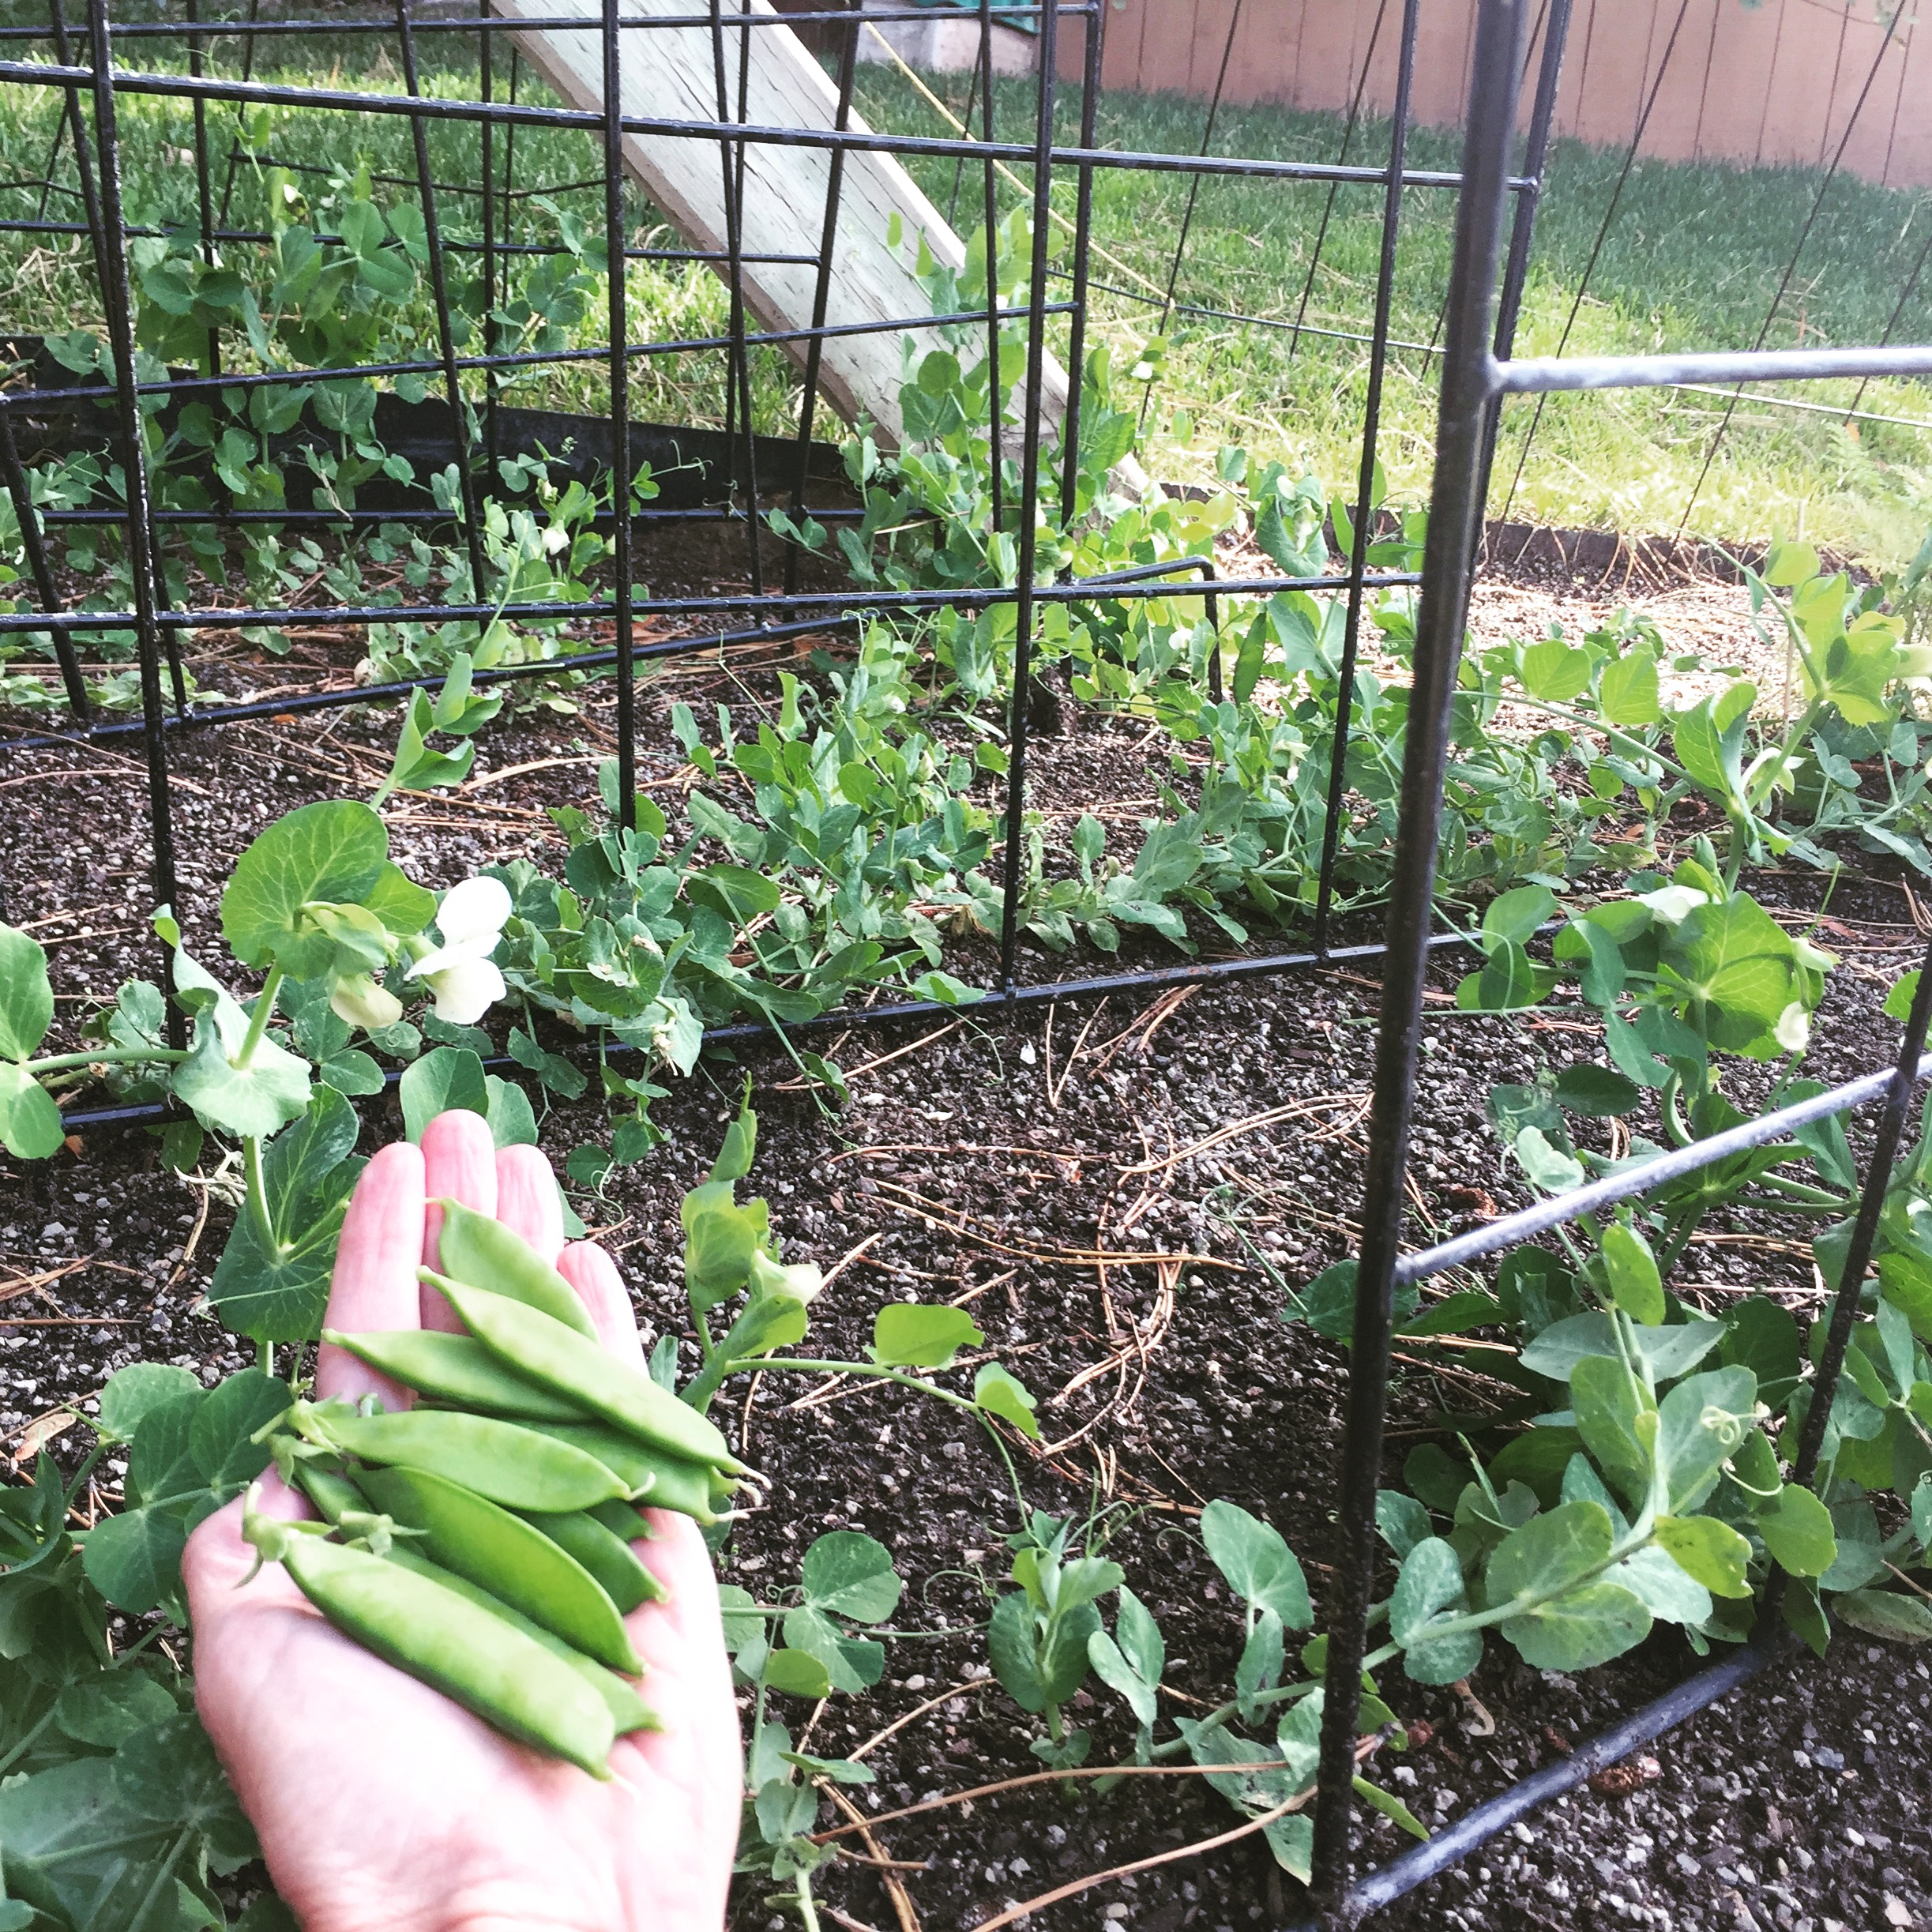 Plant your peas in July/August for a fall harvest.